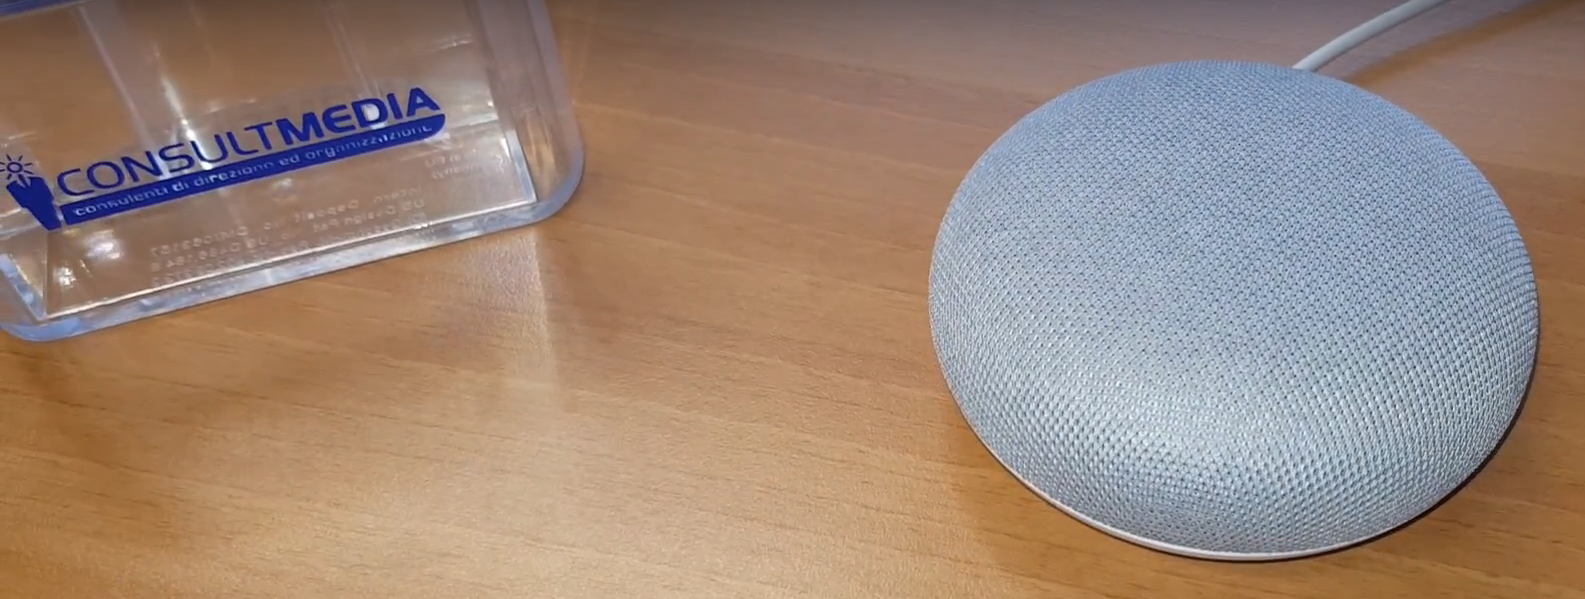 smart speaker google home - Radio 4.0. Si sposta nel tempo l'arrivo di Fiona e Aloha, gli smart speaker social di Facebook, ancora stordito dallo scandalo di Cambridge Analyctica